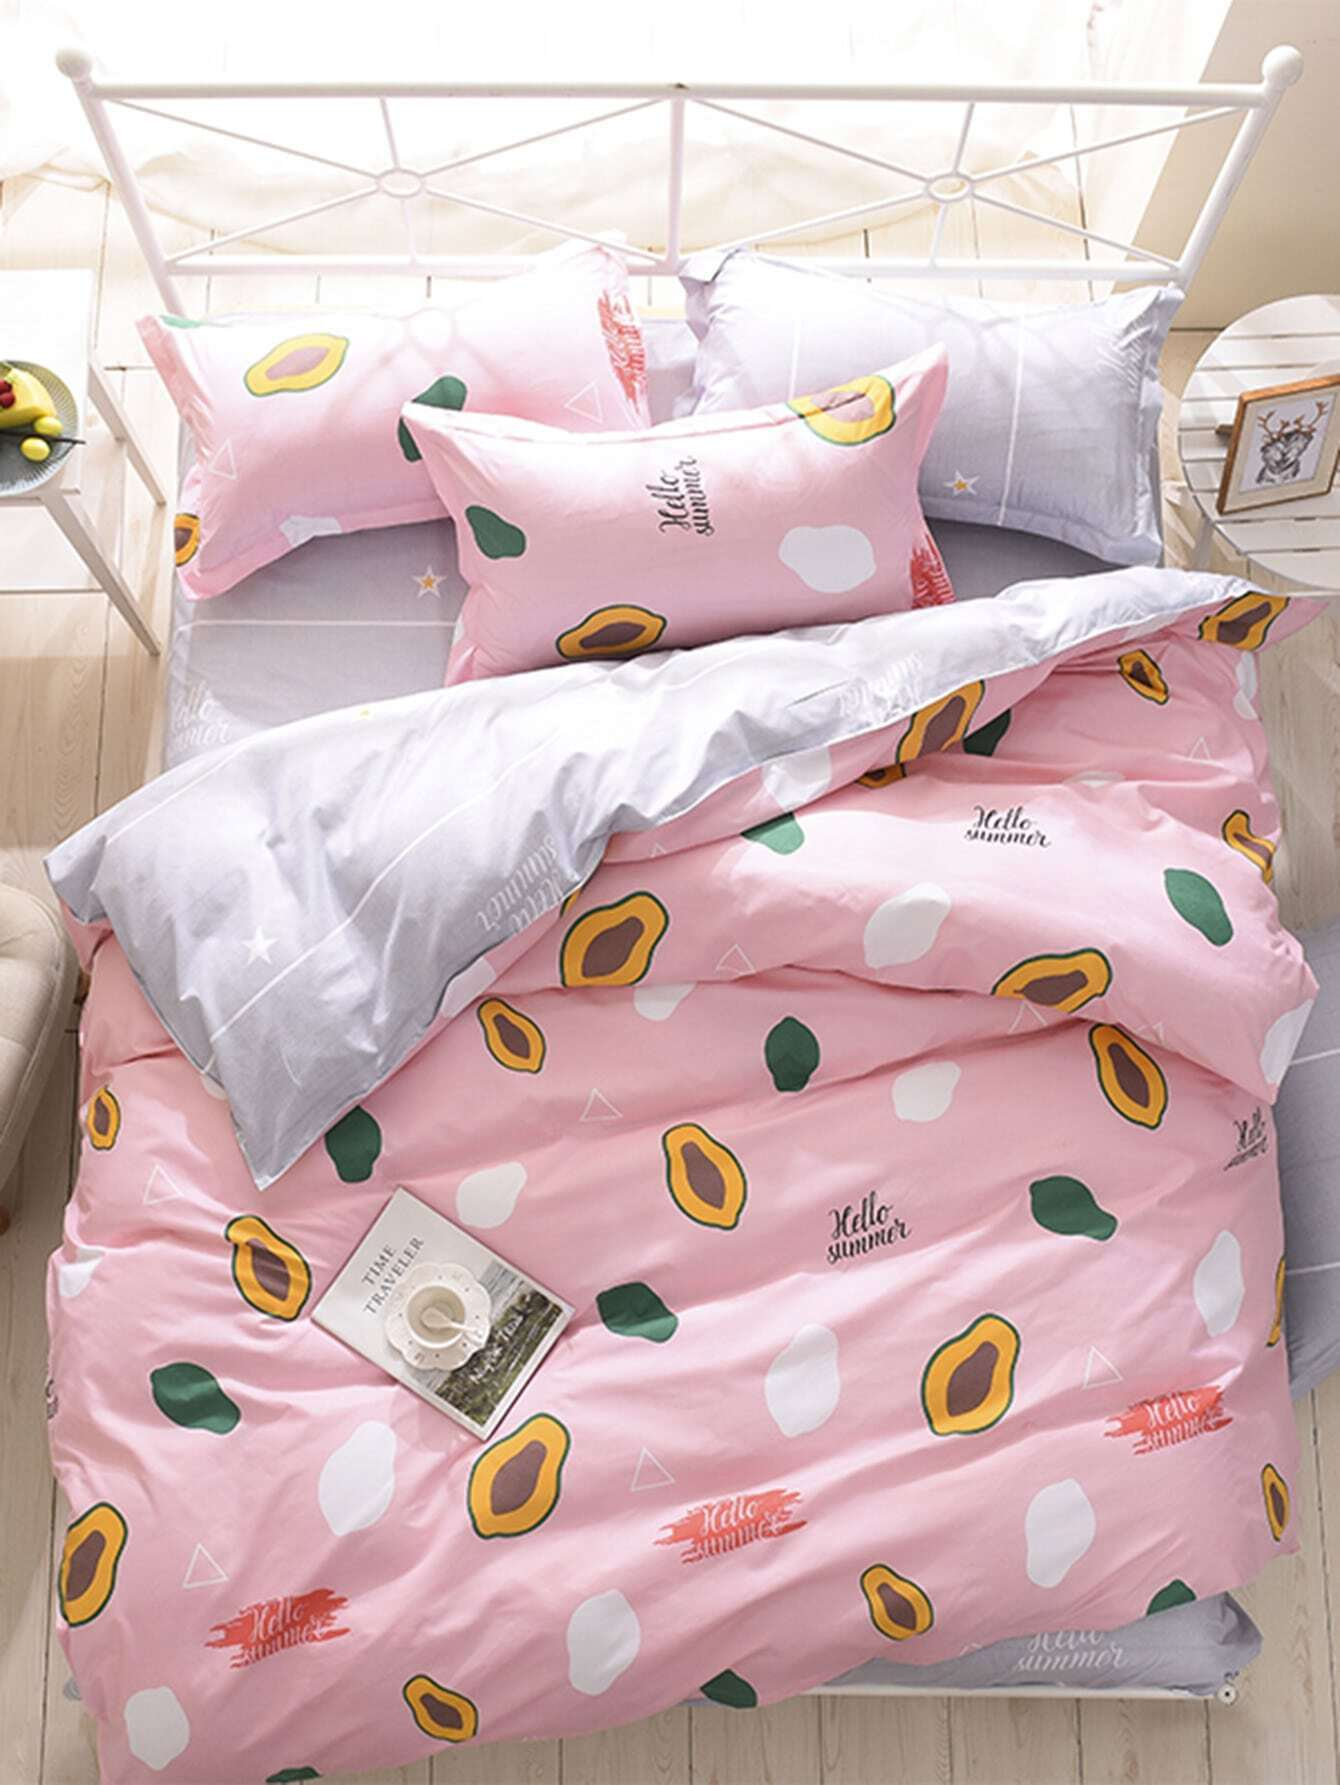 1.2m 4Pcs Fruit Print Duvet Cover Set pair of elegant faux feather tassel drop earrings for women